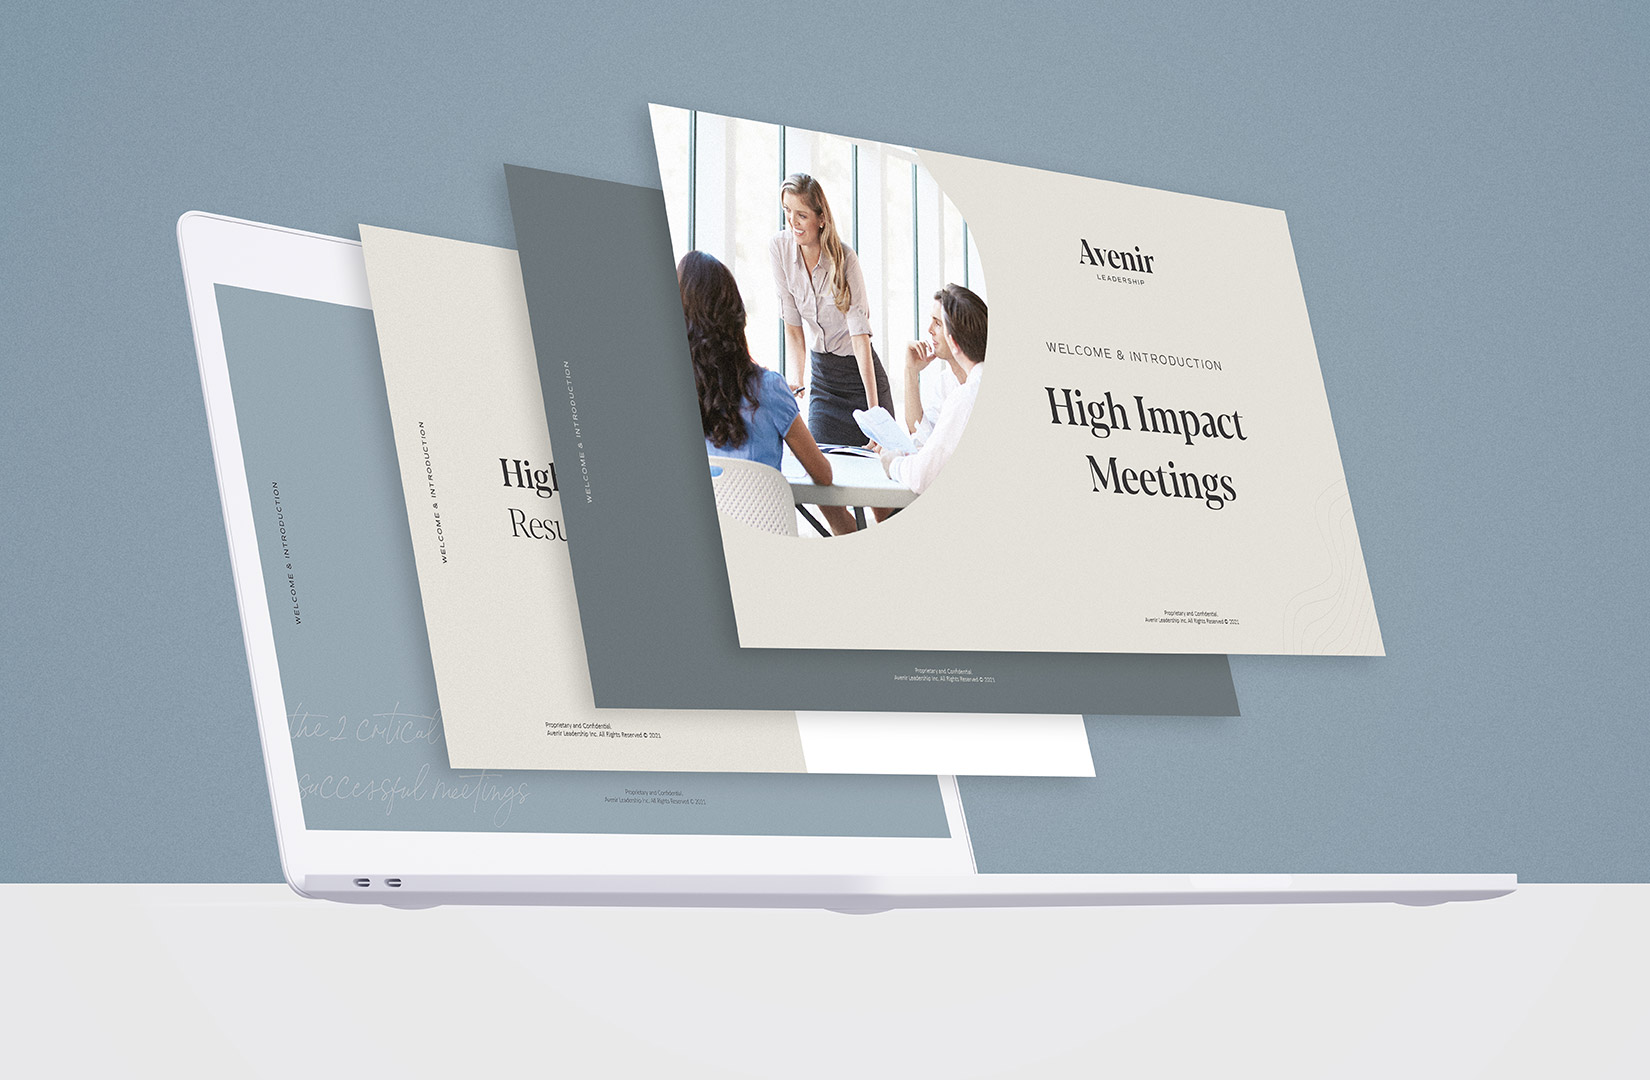 A Foster Creative case study featuring the brand application work for Avenir Leadership.